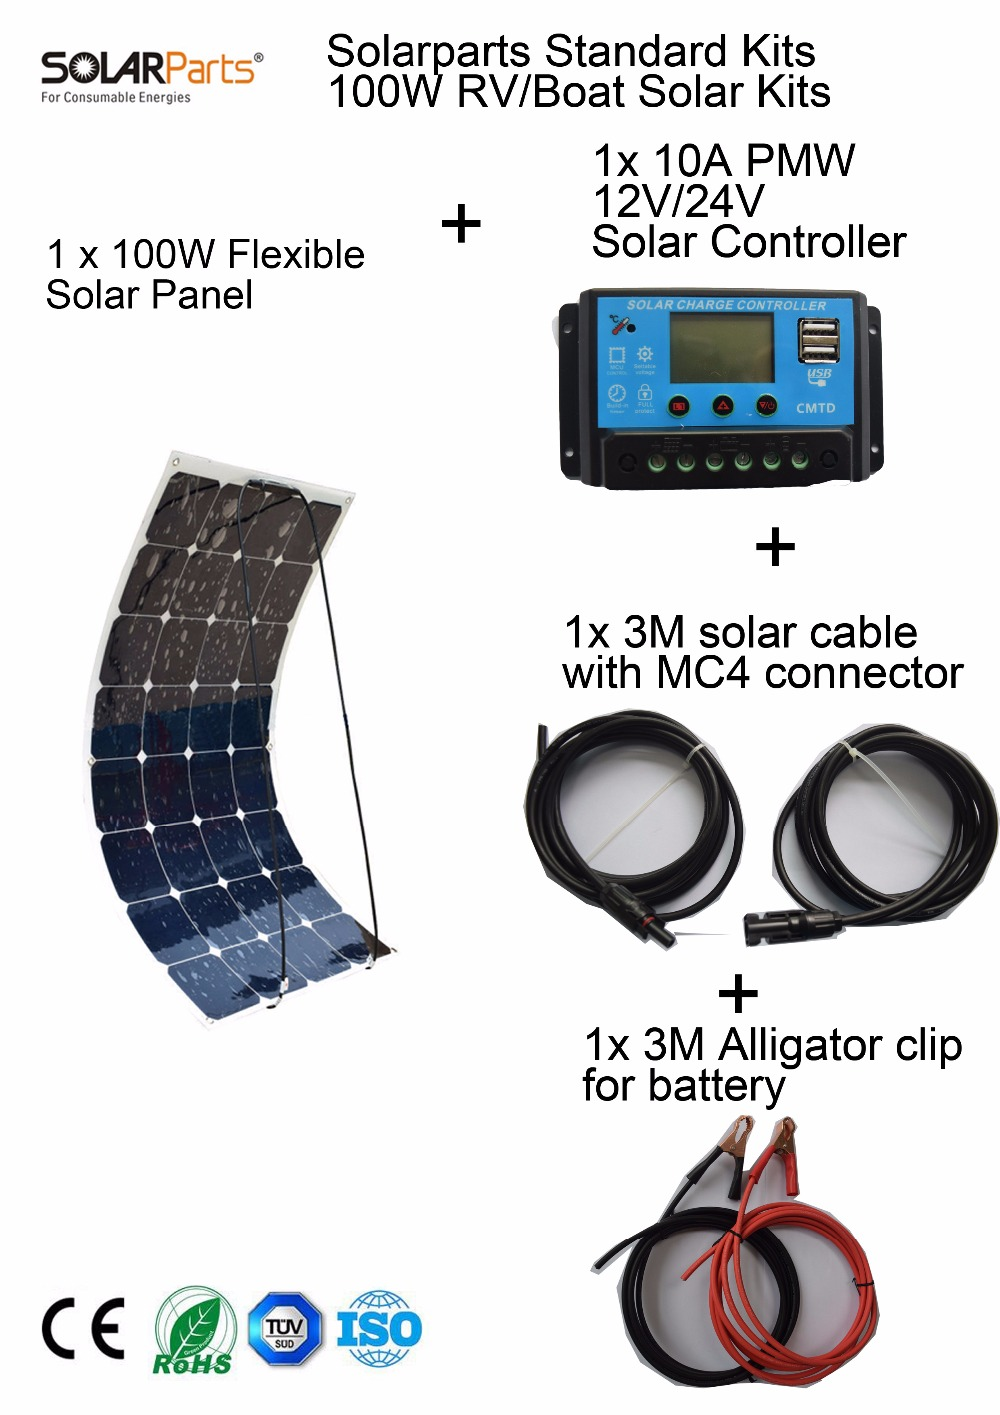 Solarparts Standard Kits 100W DIY RV Boat Kits Solar System 100W flexible solar panel controller cable